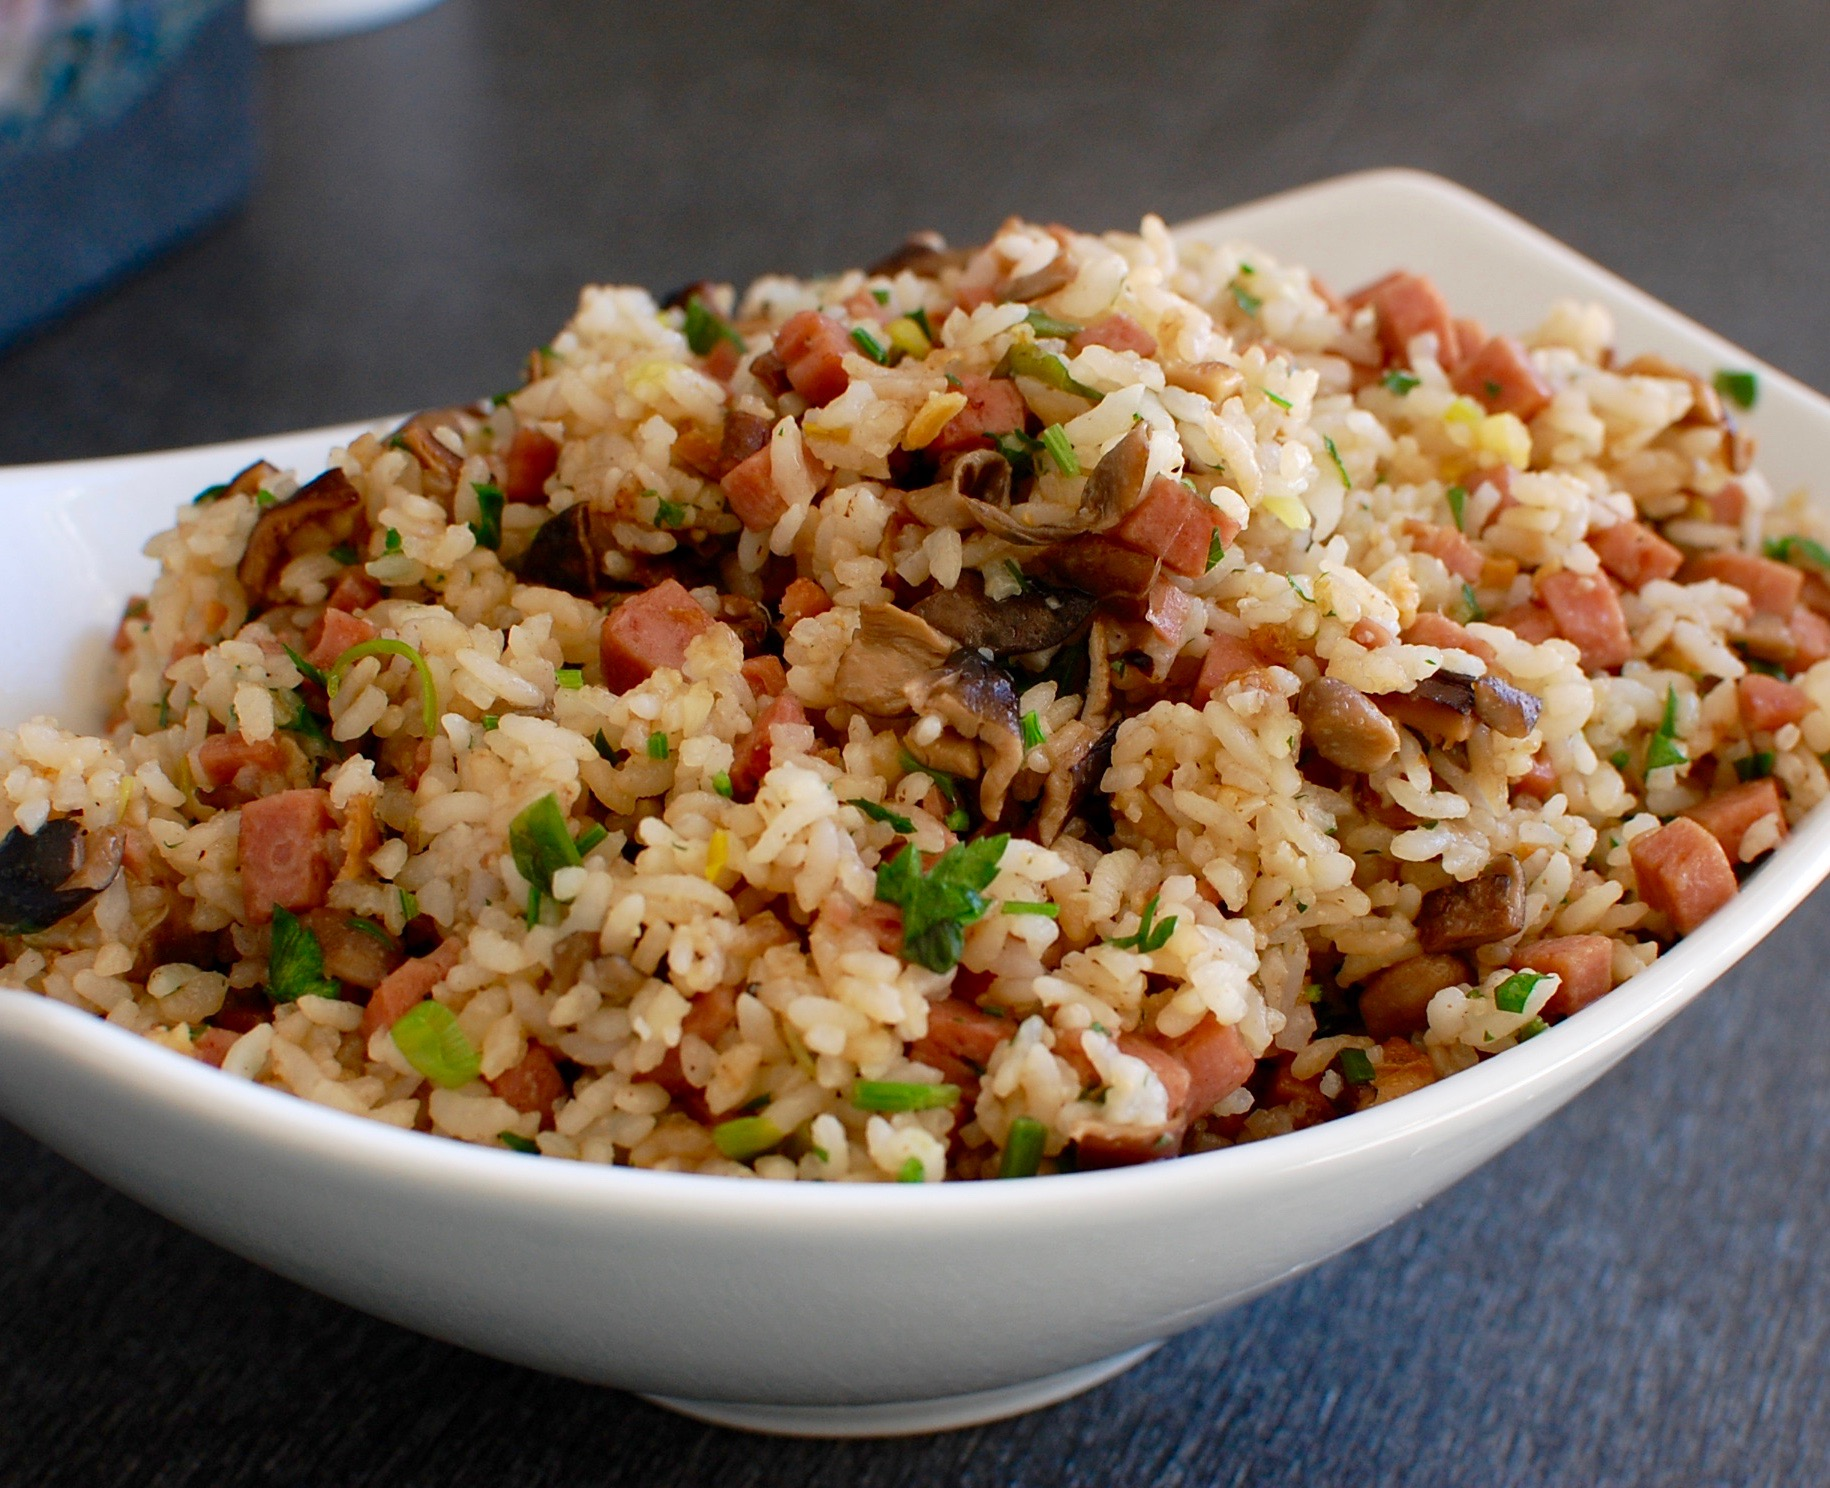 Japanese Fried Rice The 350 Degree Oven